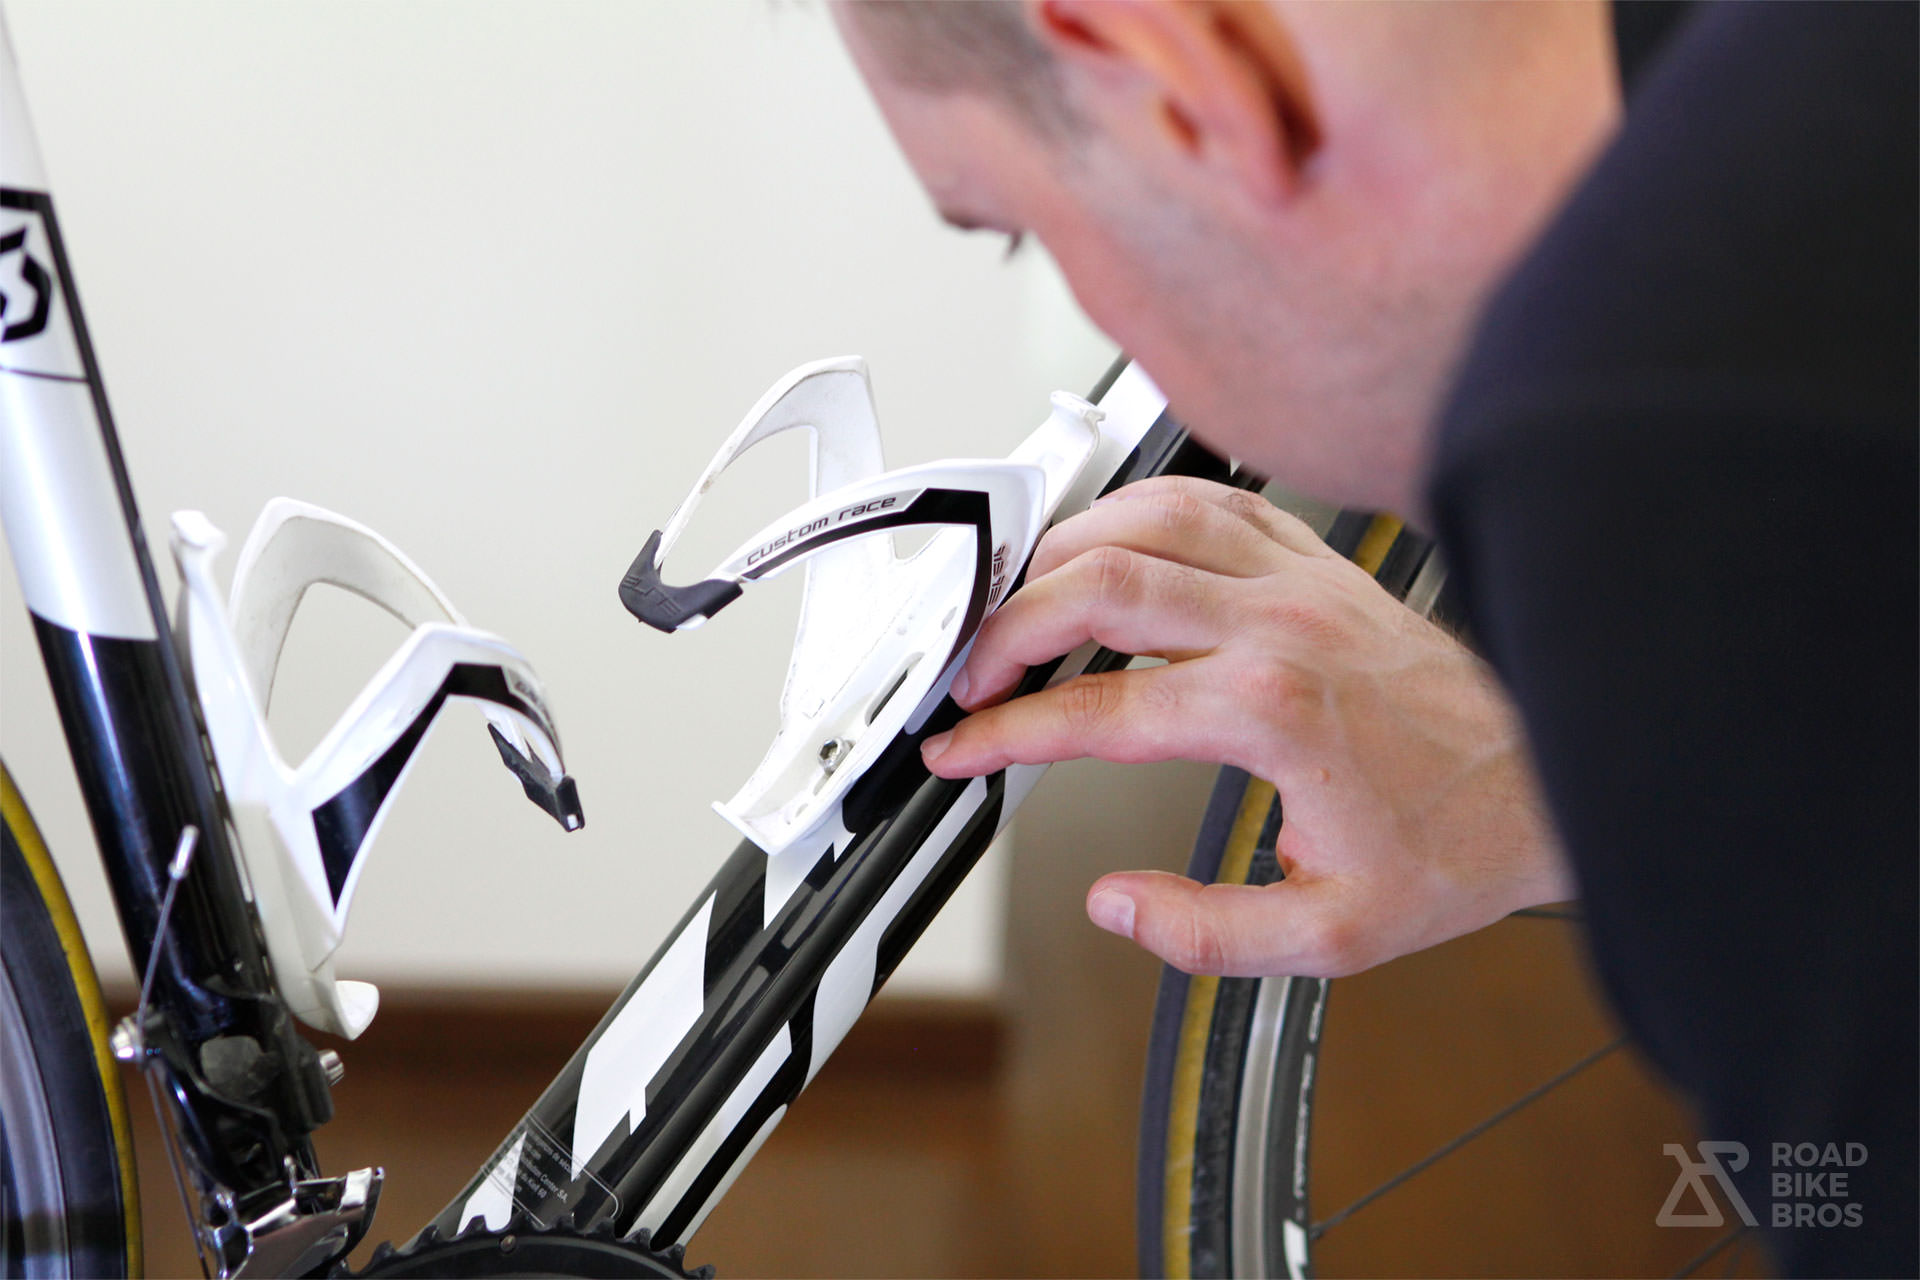 60 Seconds Check Before Every Ride Cycling Bicycle Roadbike Check Visual Inspection Frame